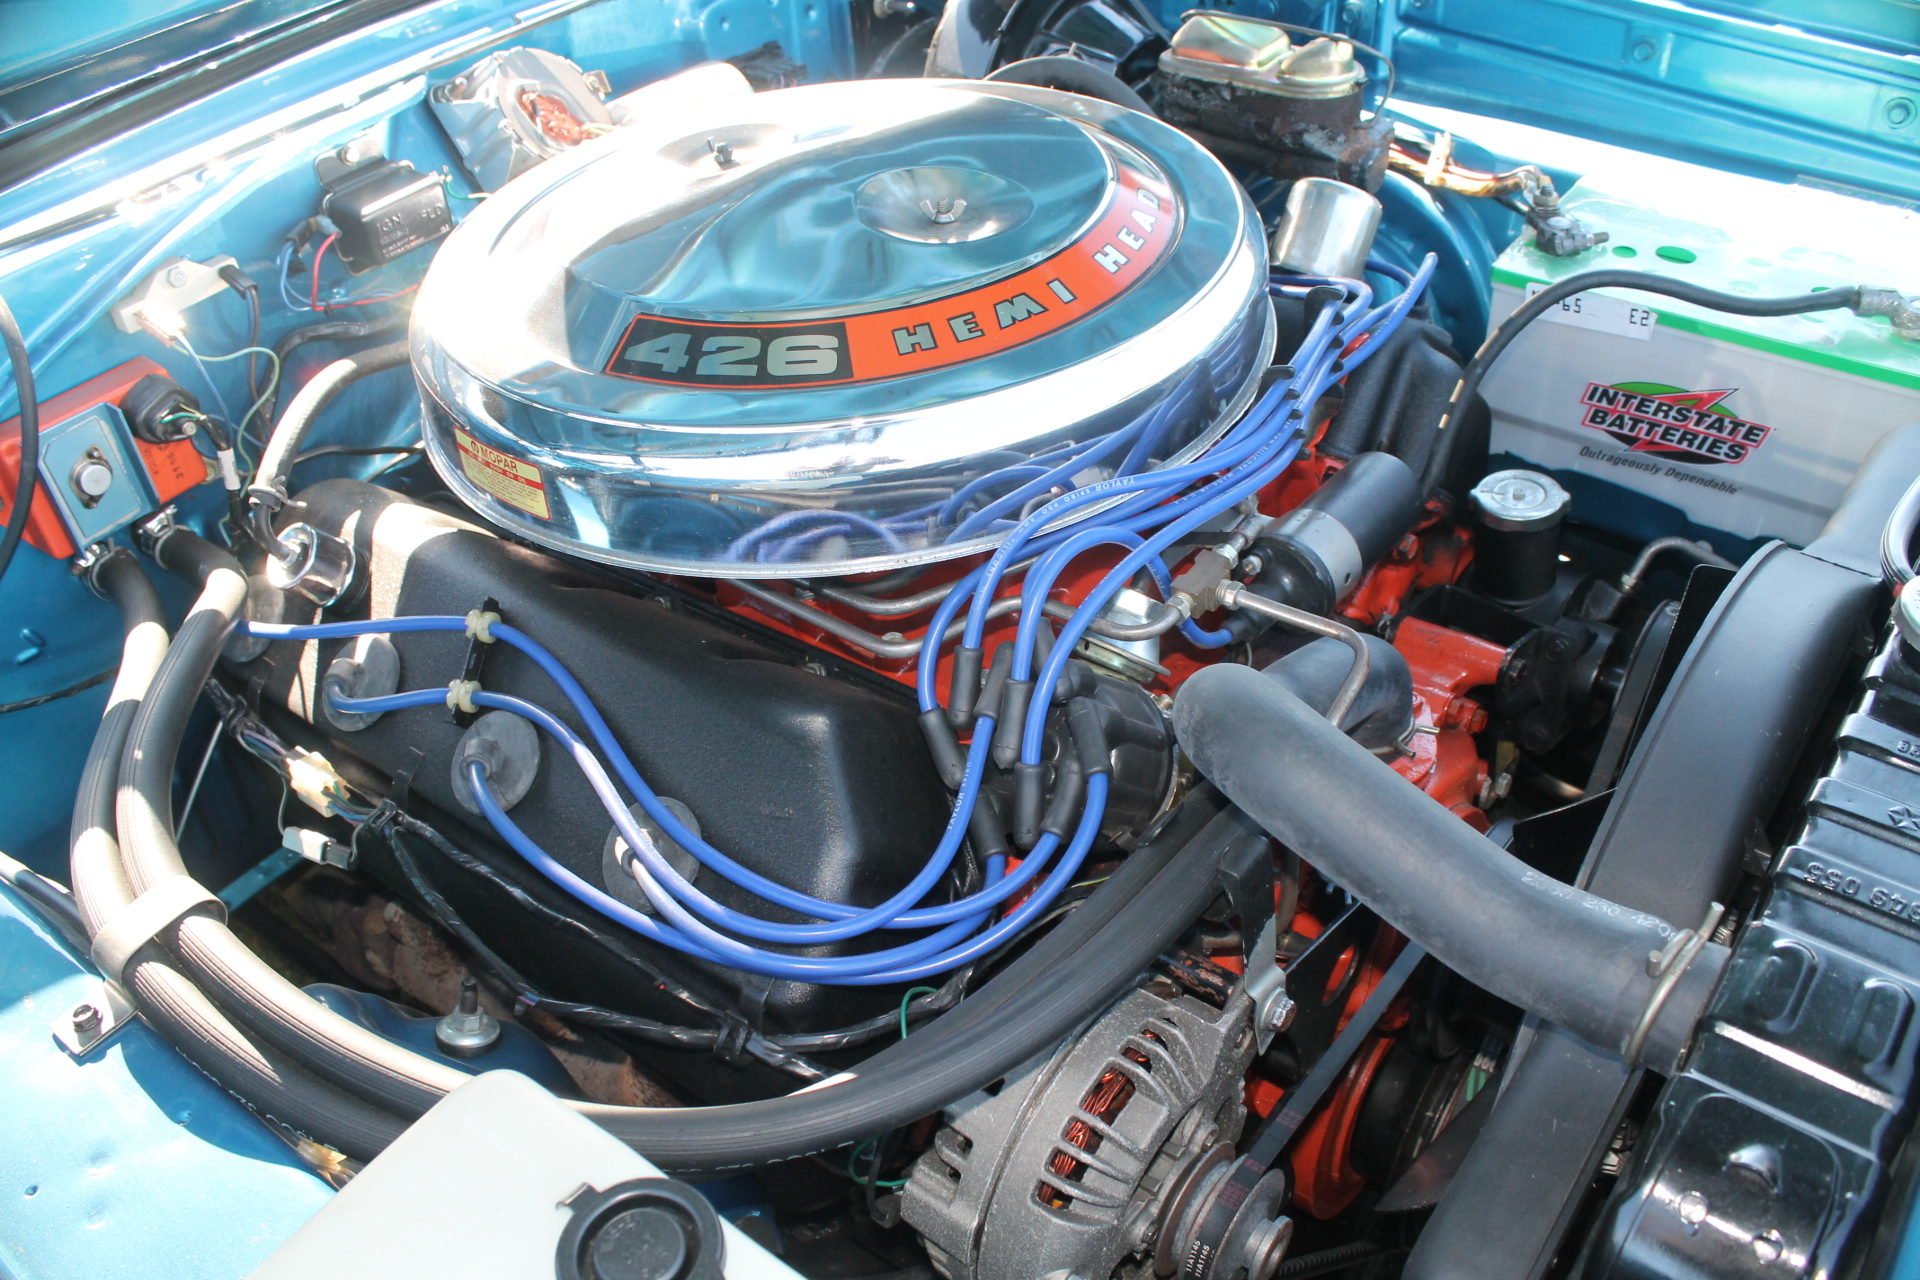 The Real Hemi Chrysler 426 Cubic Inch Engine 1960 Plymouth Gtx Note